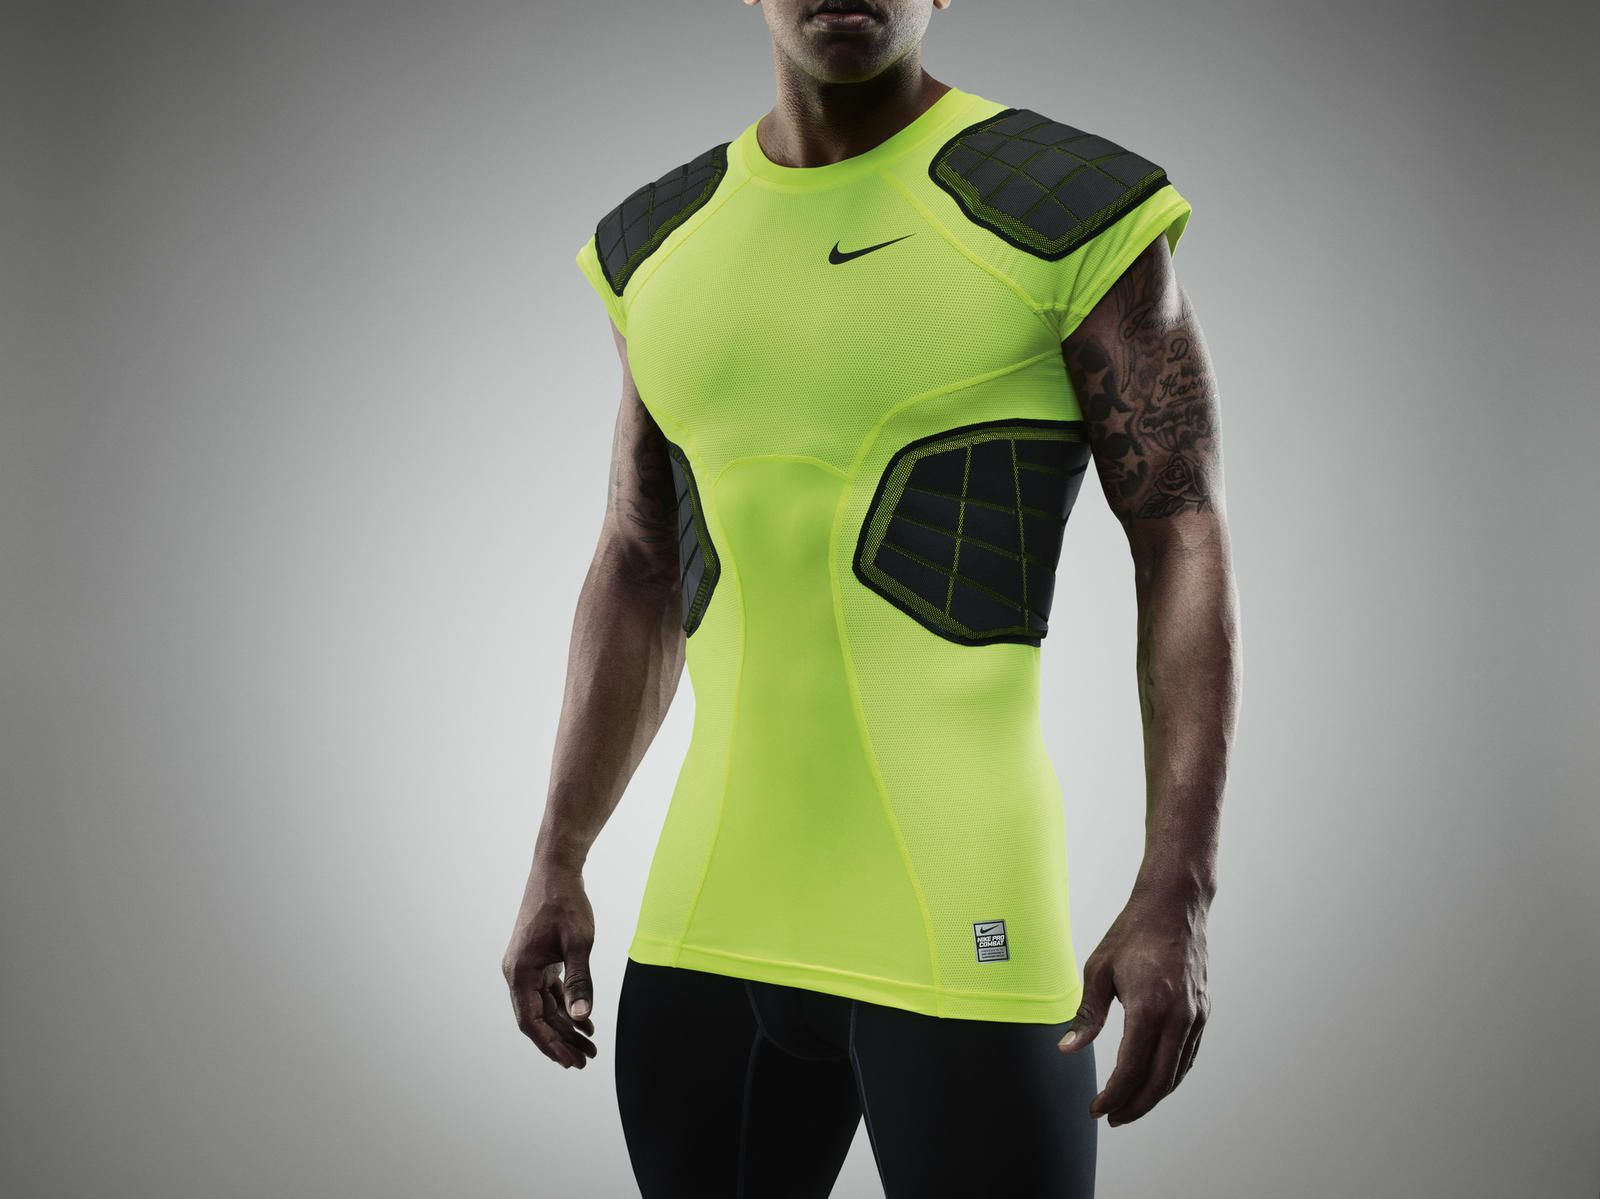 Nike News - Nike Pro Hyperstrong: Taking Impact Protection to the Next Level